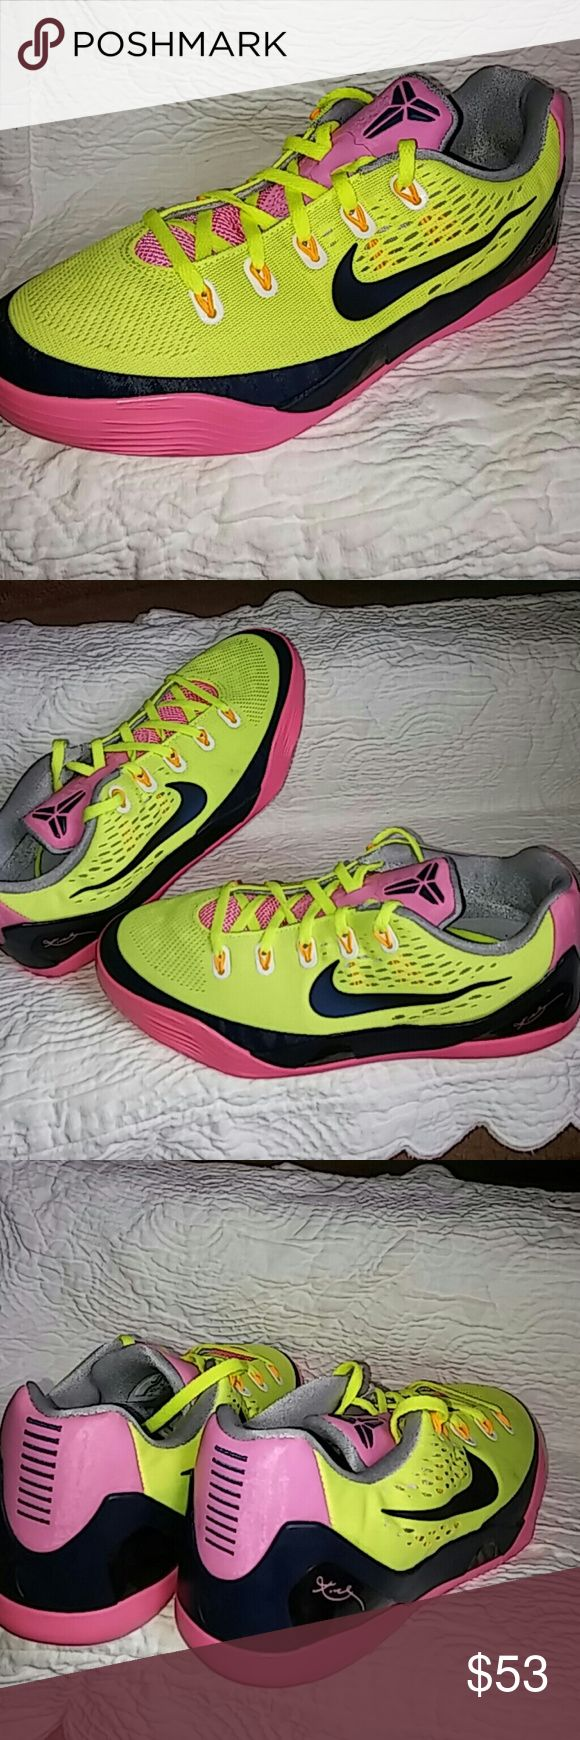 Nike Kobe Sneakers SIZE 6Y or SIZE 8 WOMEN Shoes worn just about 4 times and rated 9/10...In near new shape and condition..This is size 6Y or Size 8 WOMEN...Beautiful shoes with beautiful color combination. One of the finest Kobe Sneakers. Nike Shoes Sneakers